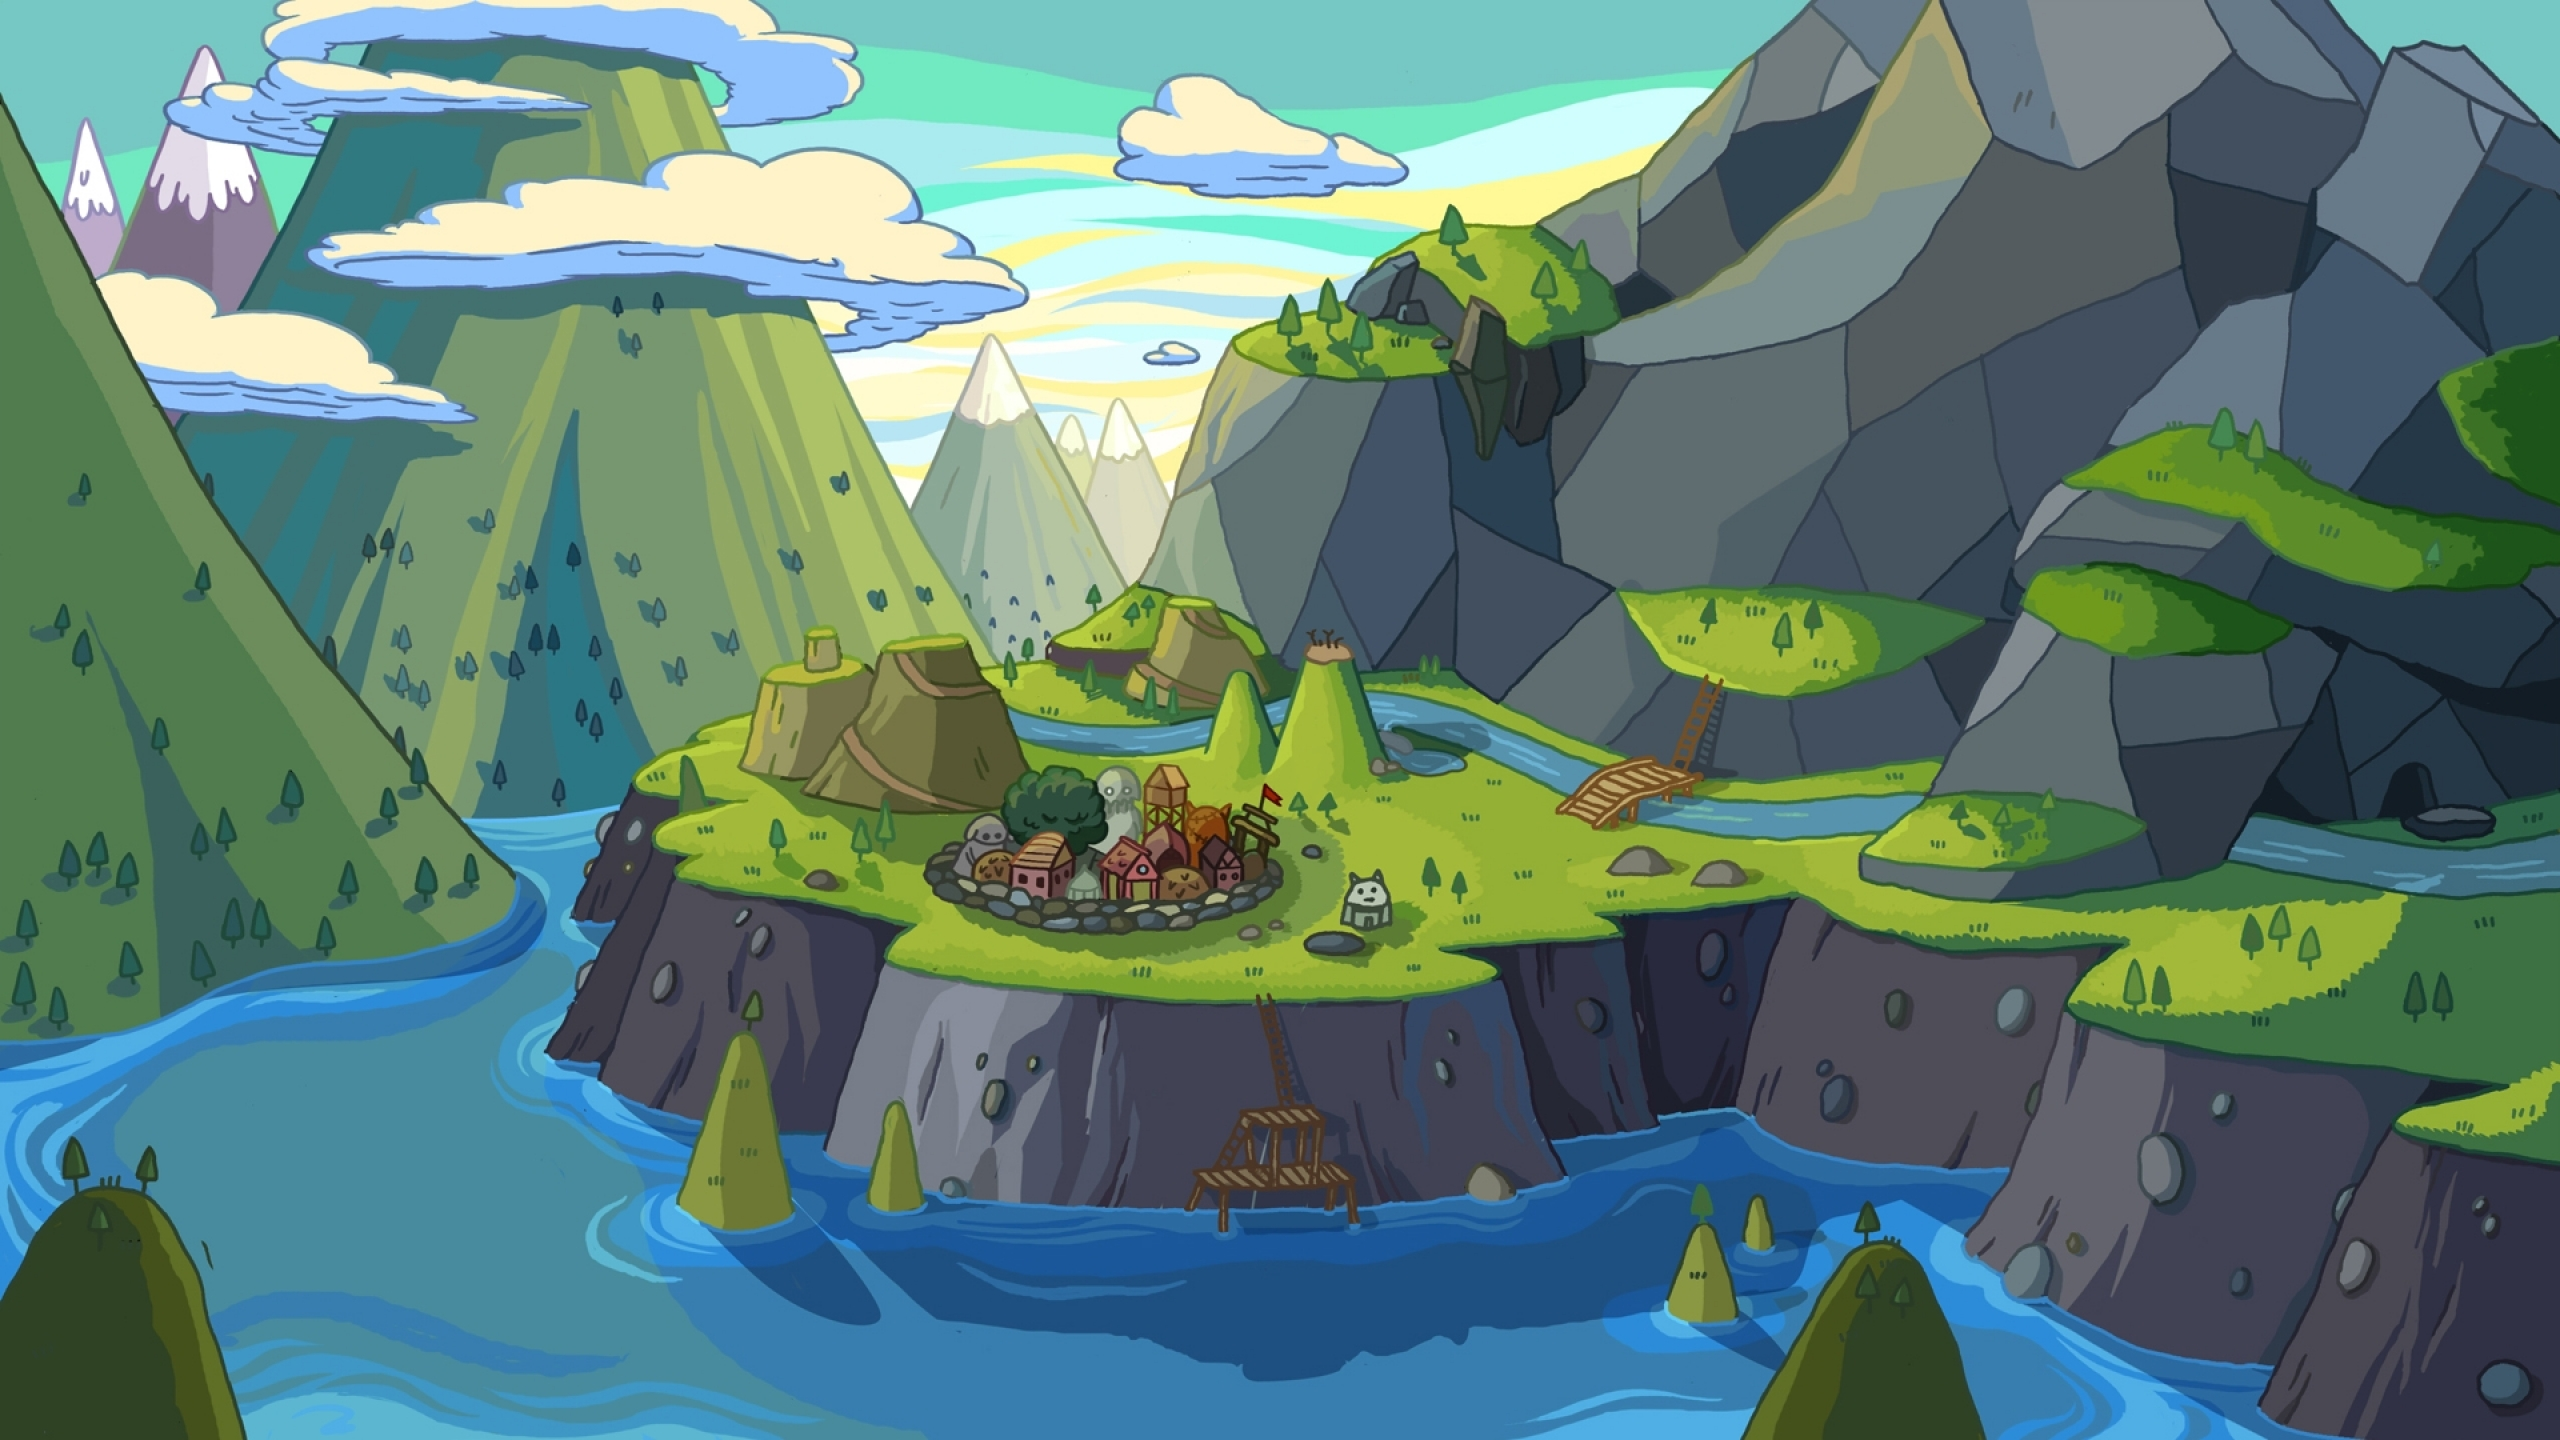 cartoon-network-mountains-landscapes-illustrations-adventure-time-rivers-sea-1920x1080-Art-wallpaper-wpc5803302